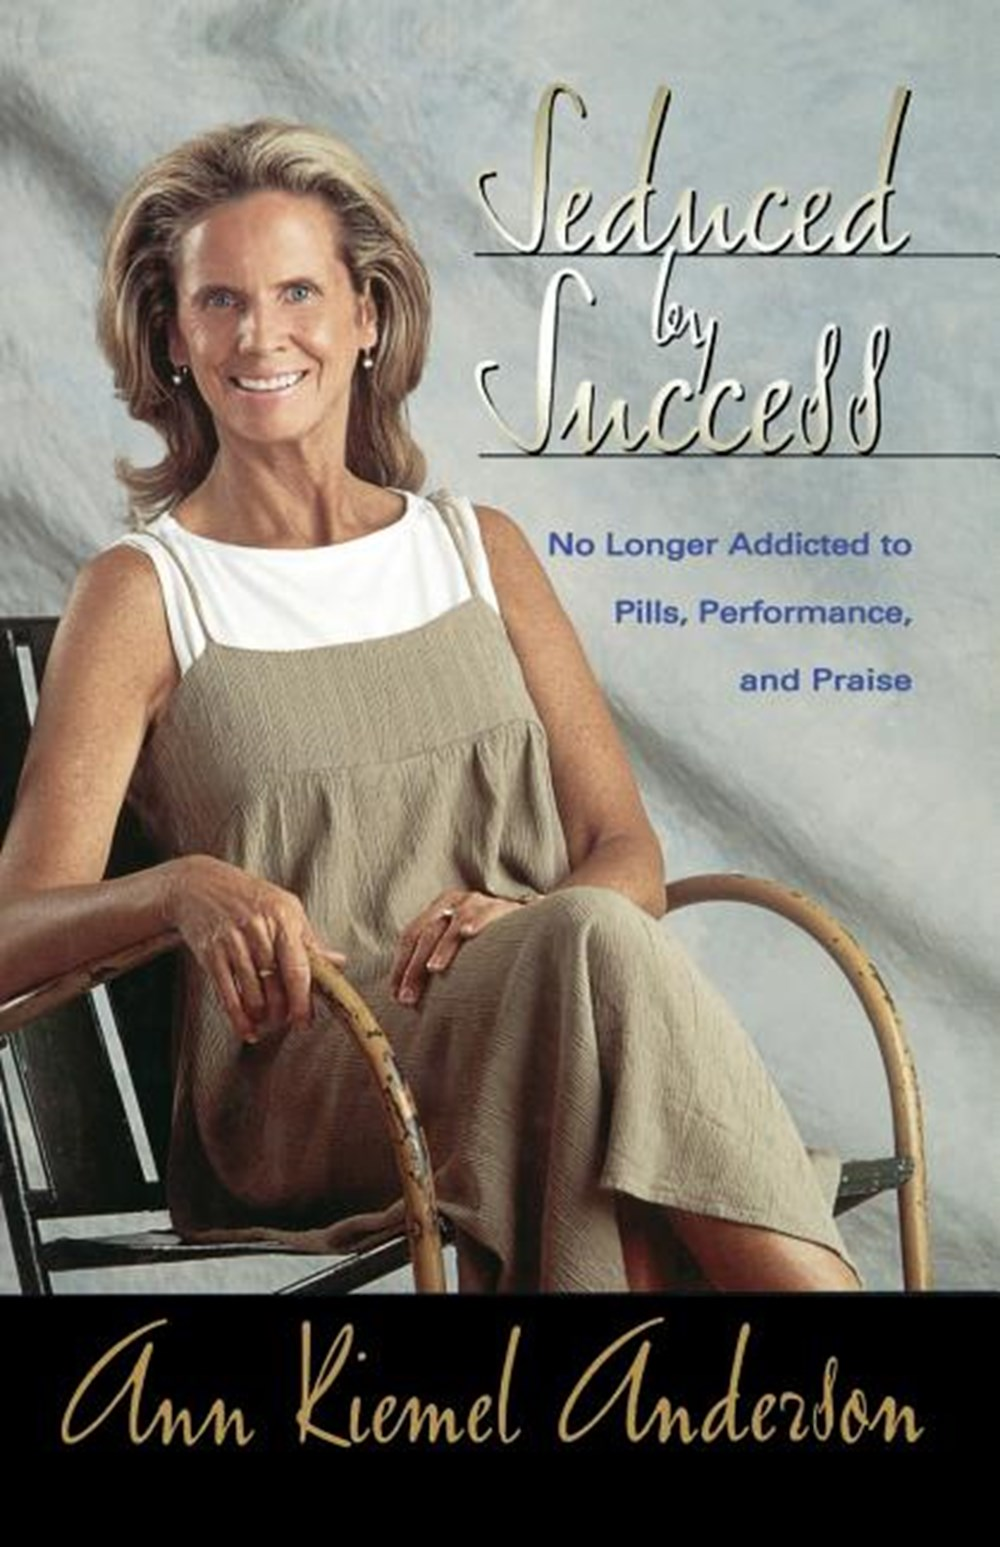 Seduced by Success No Longer Addicted to Pills, Performance and Praise